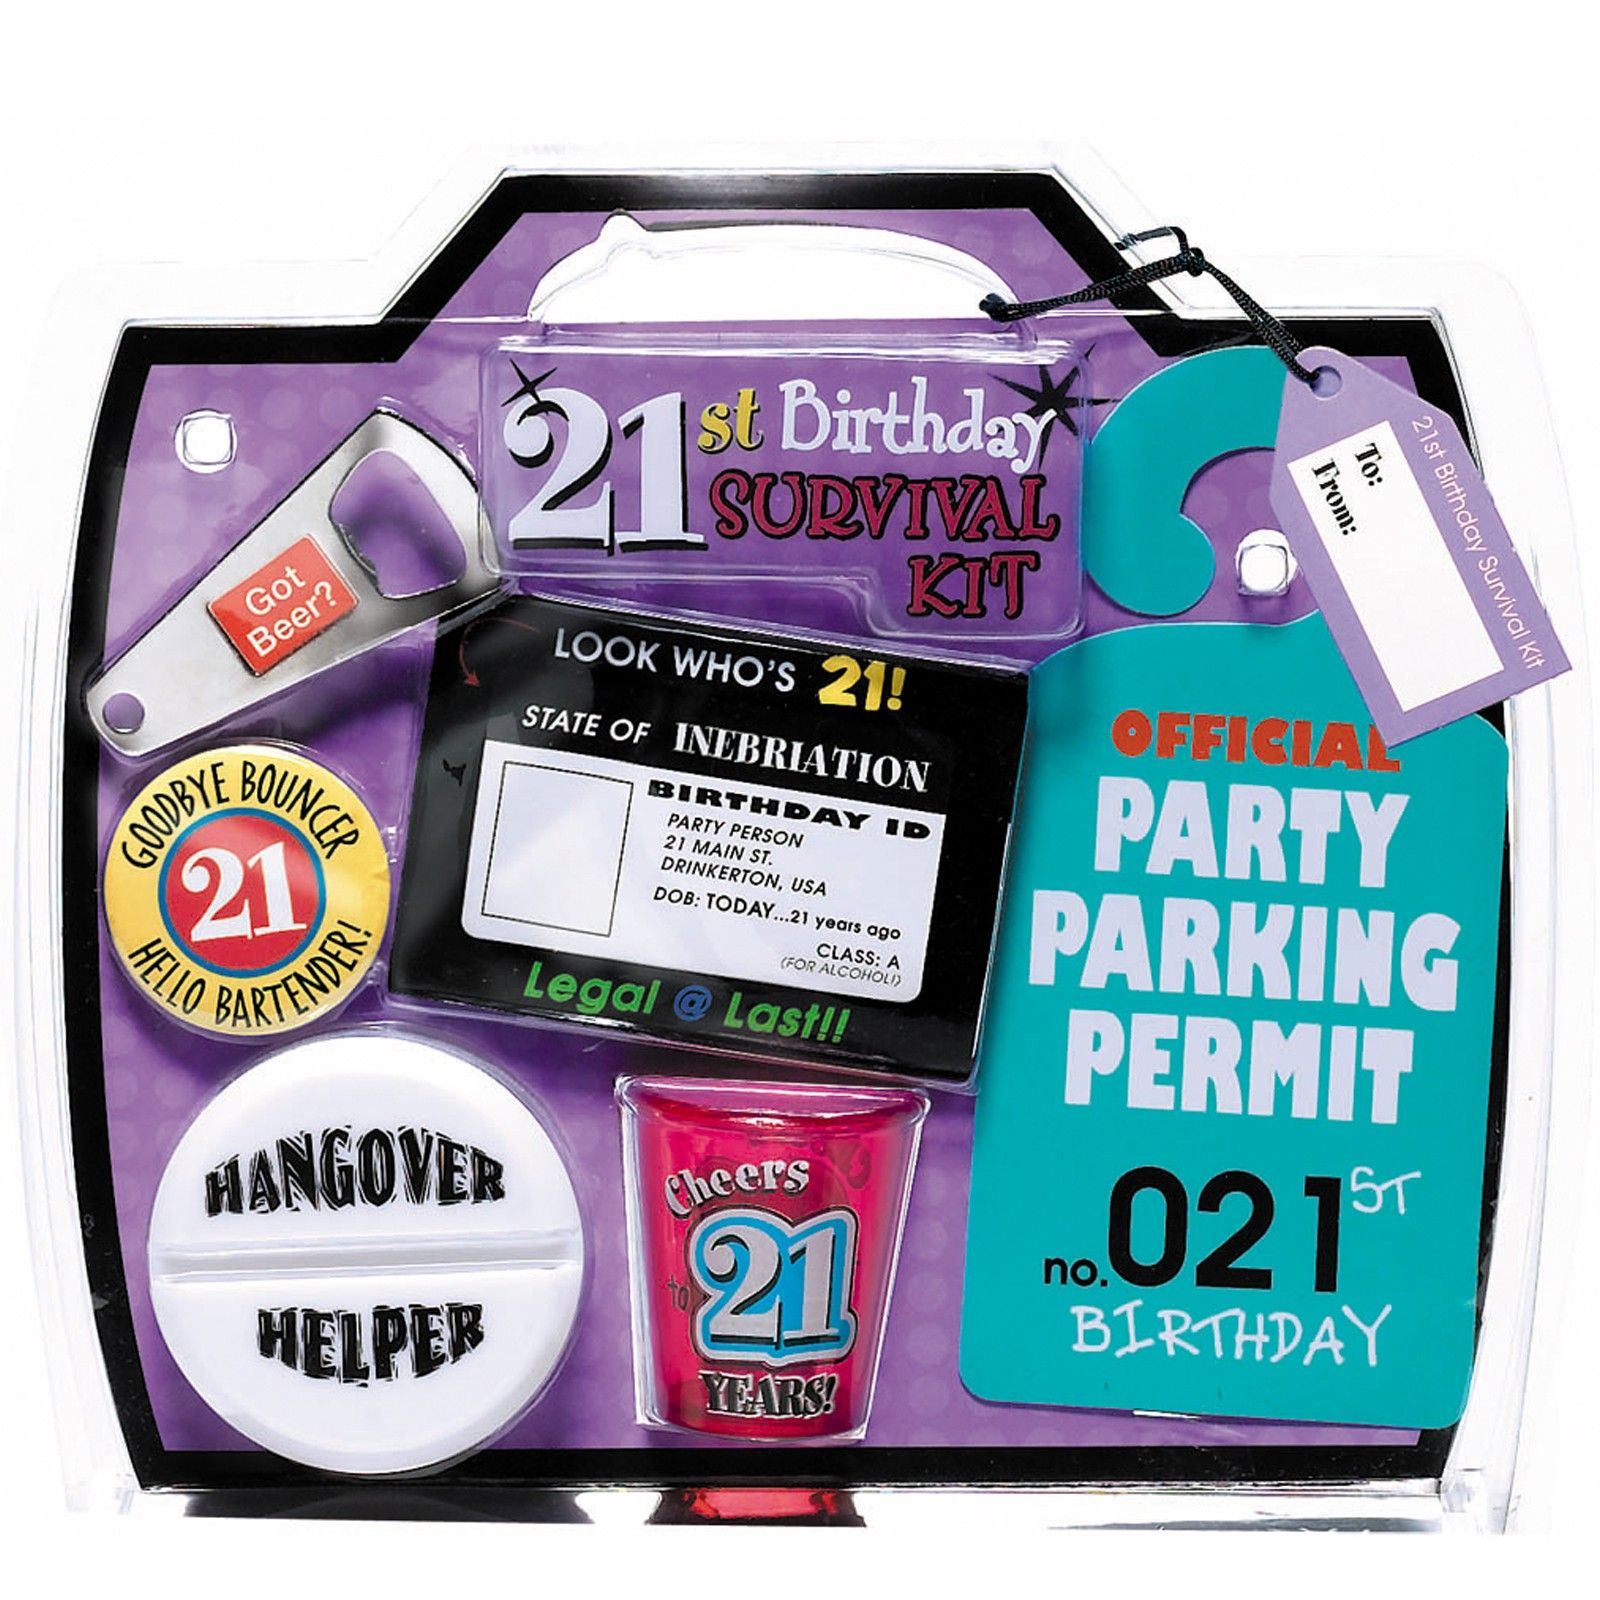 21st Birthday Survival Kit 21st birthday Pinterest Birthday